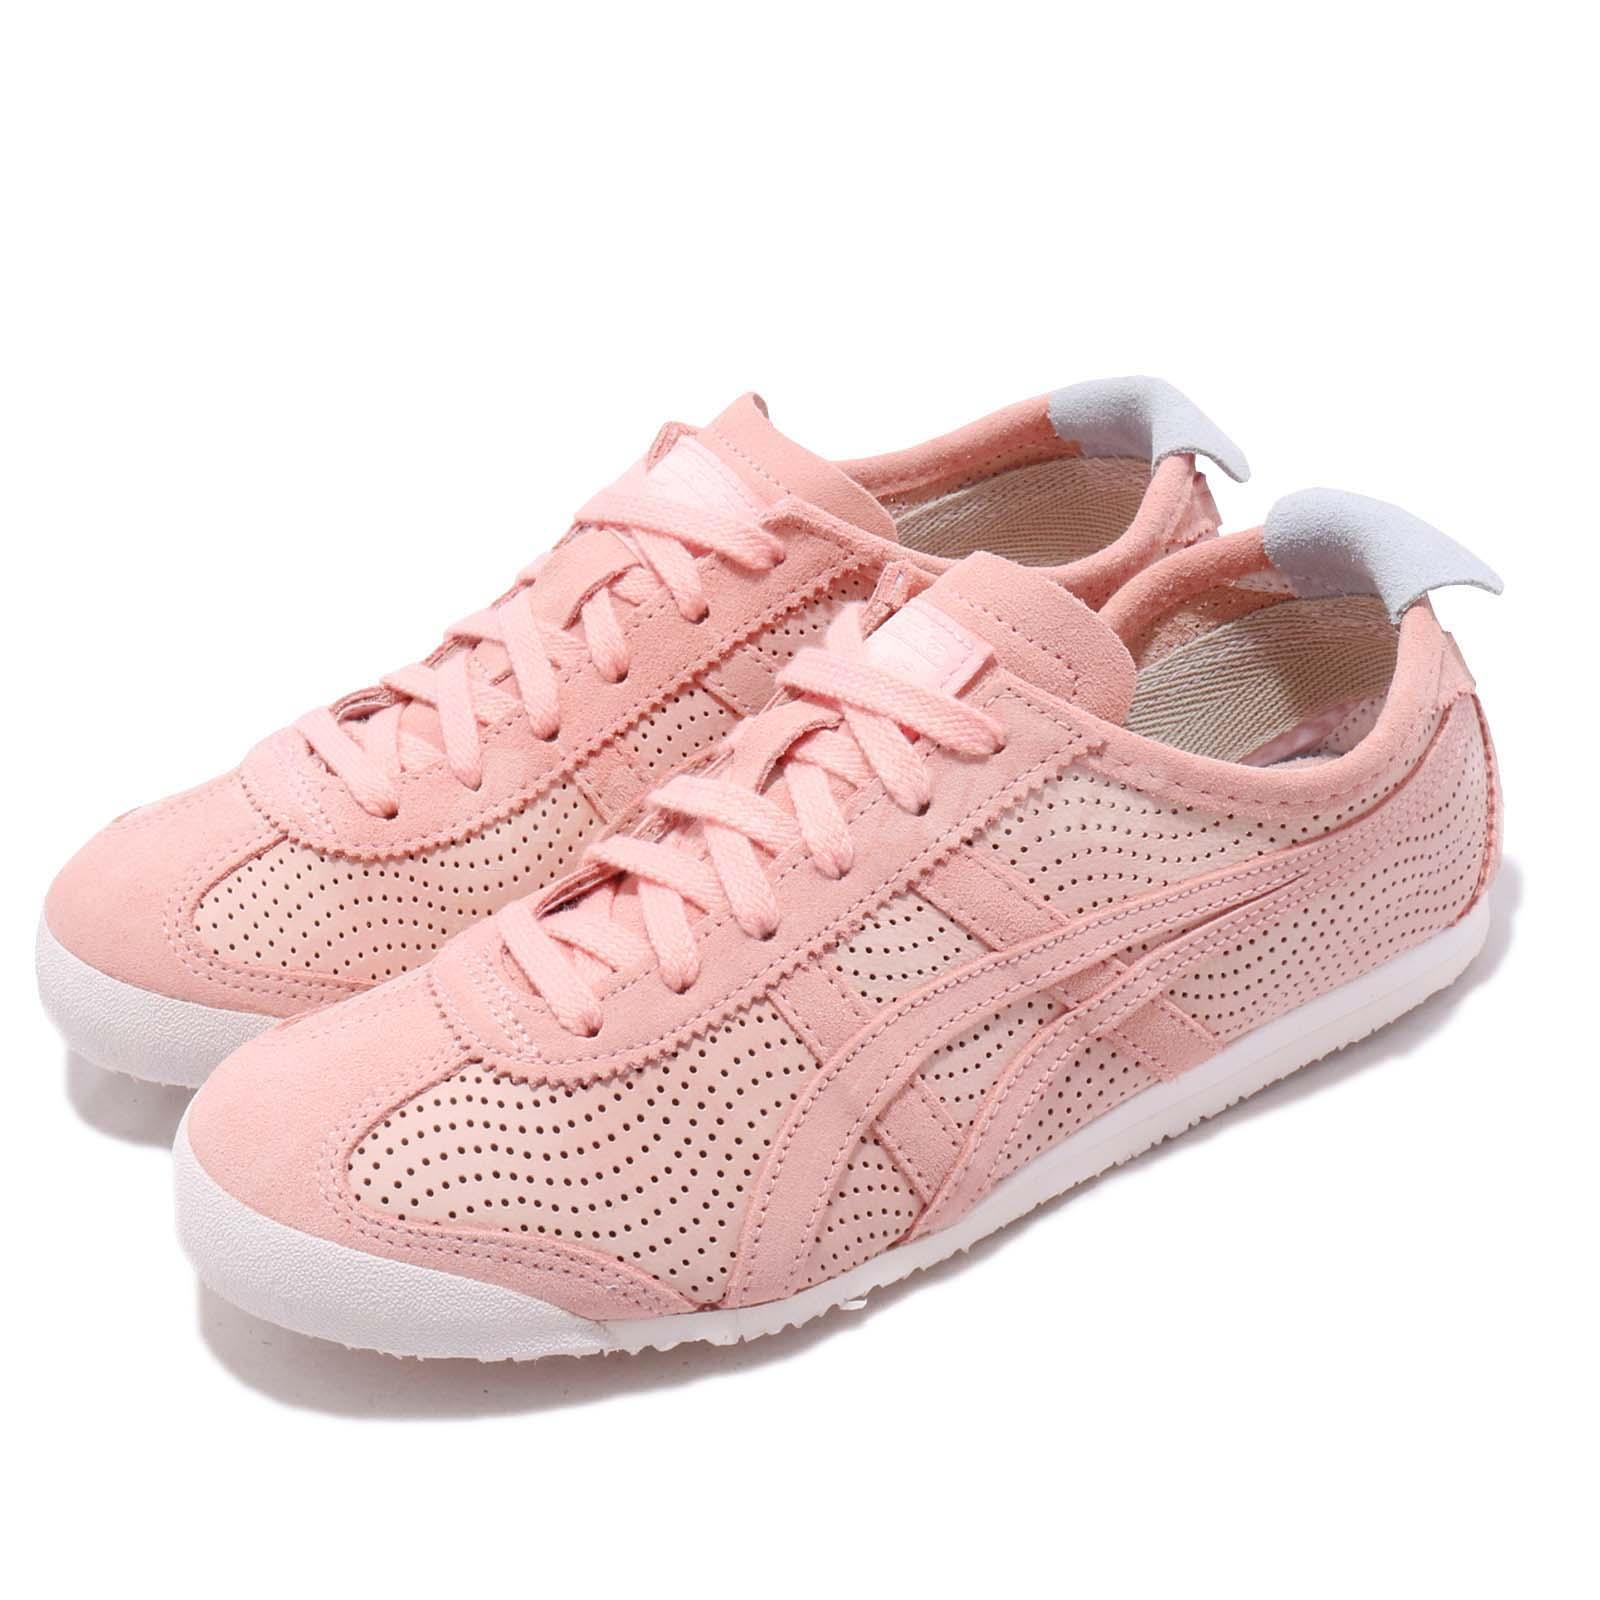 113997cfe0a7 Details about Asics Onitsuka Tiger Mexico 66 Pink Womens Retro Running  Shoes 1182A074-701